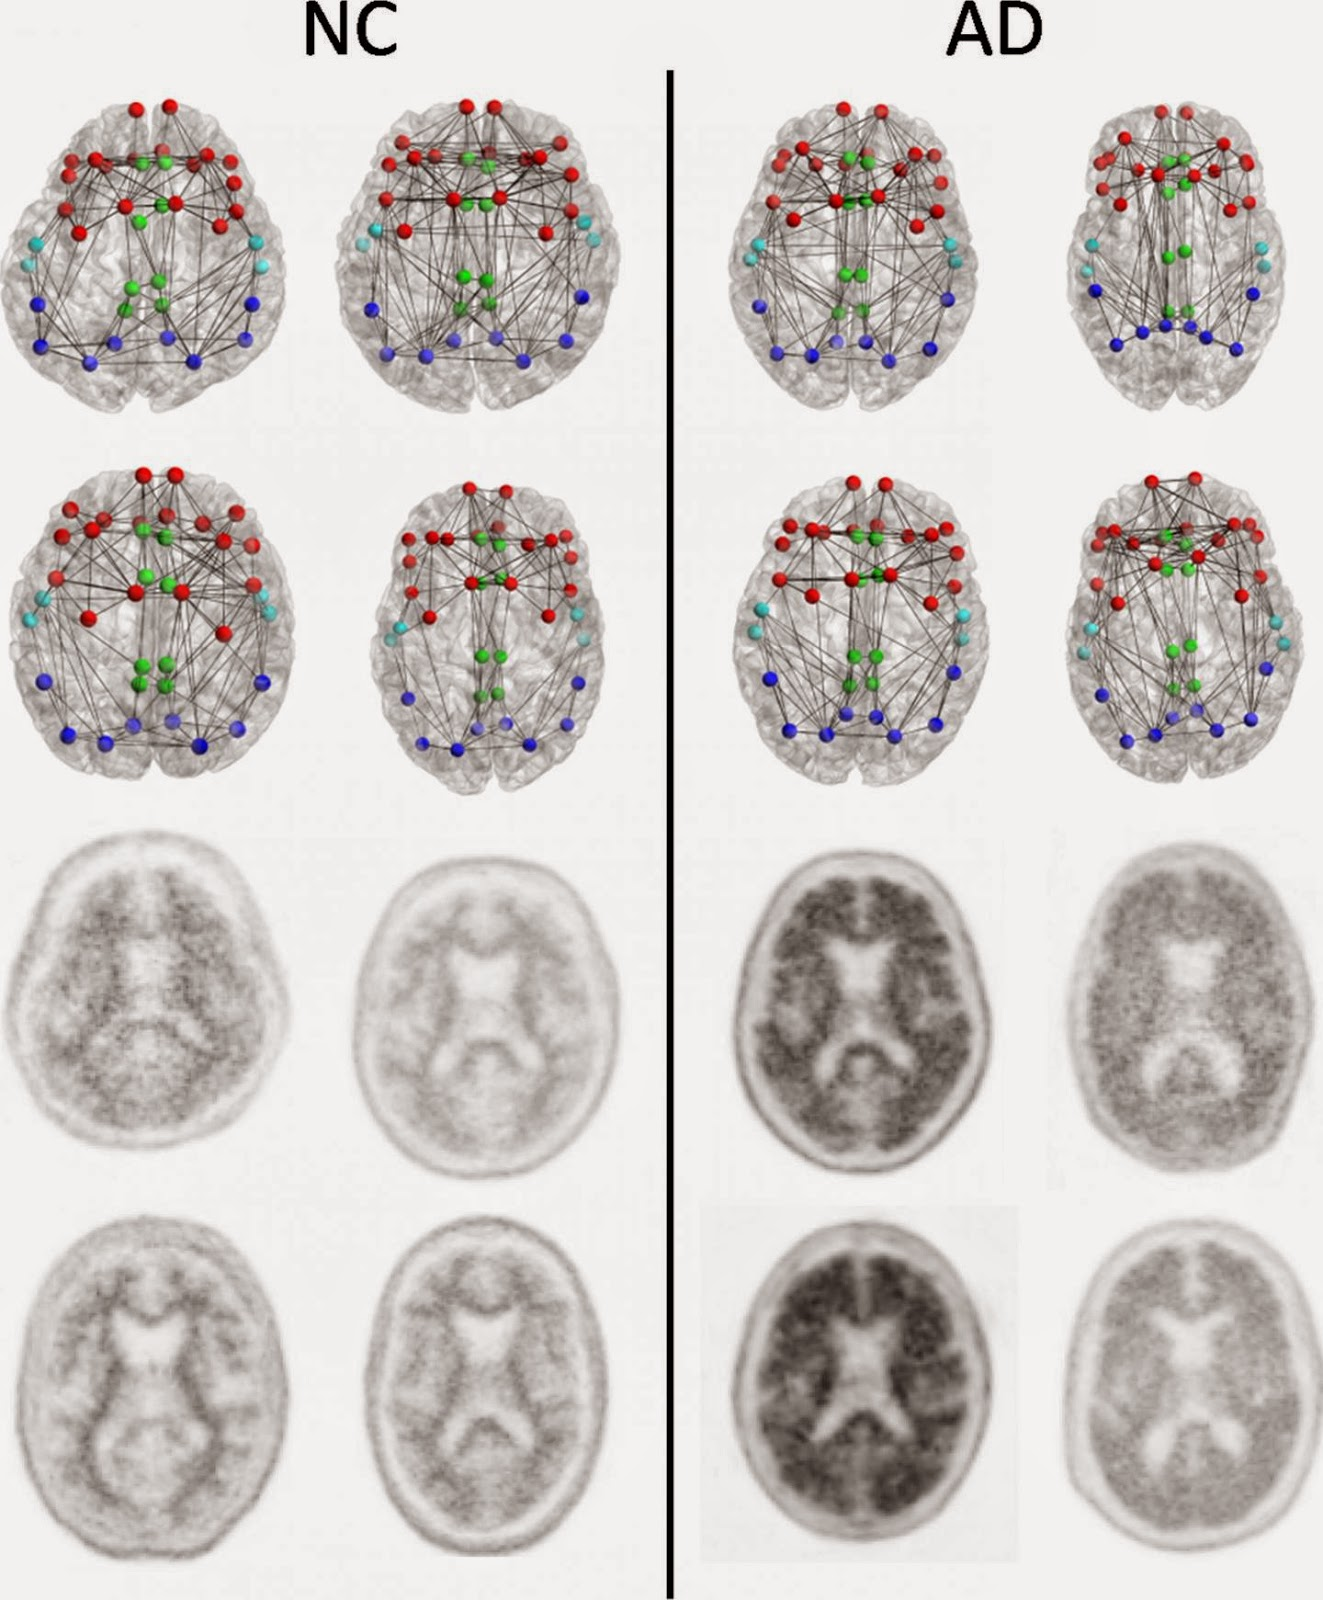 Imaging Shows Brain Connection Breakdown In Early Alzheimer's Disease